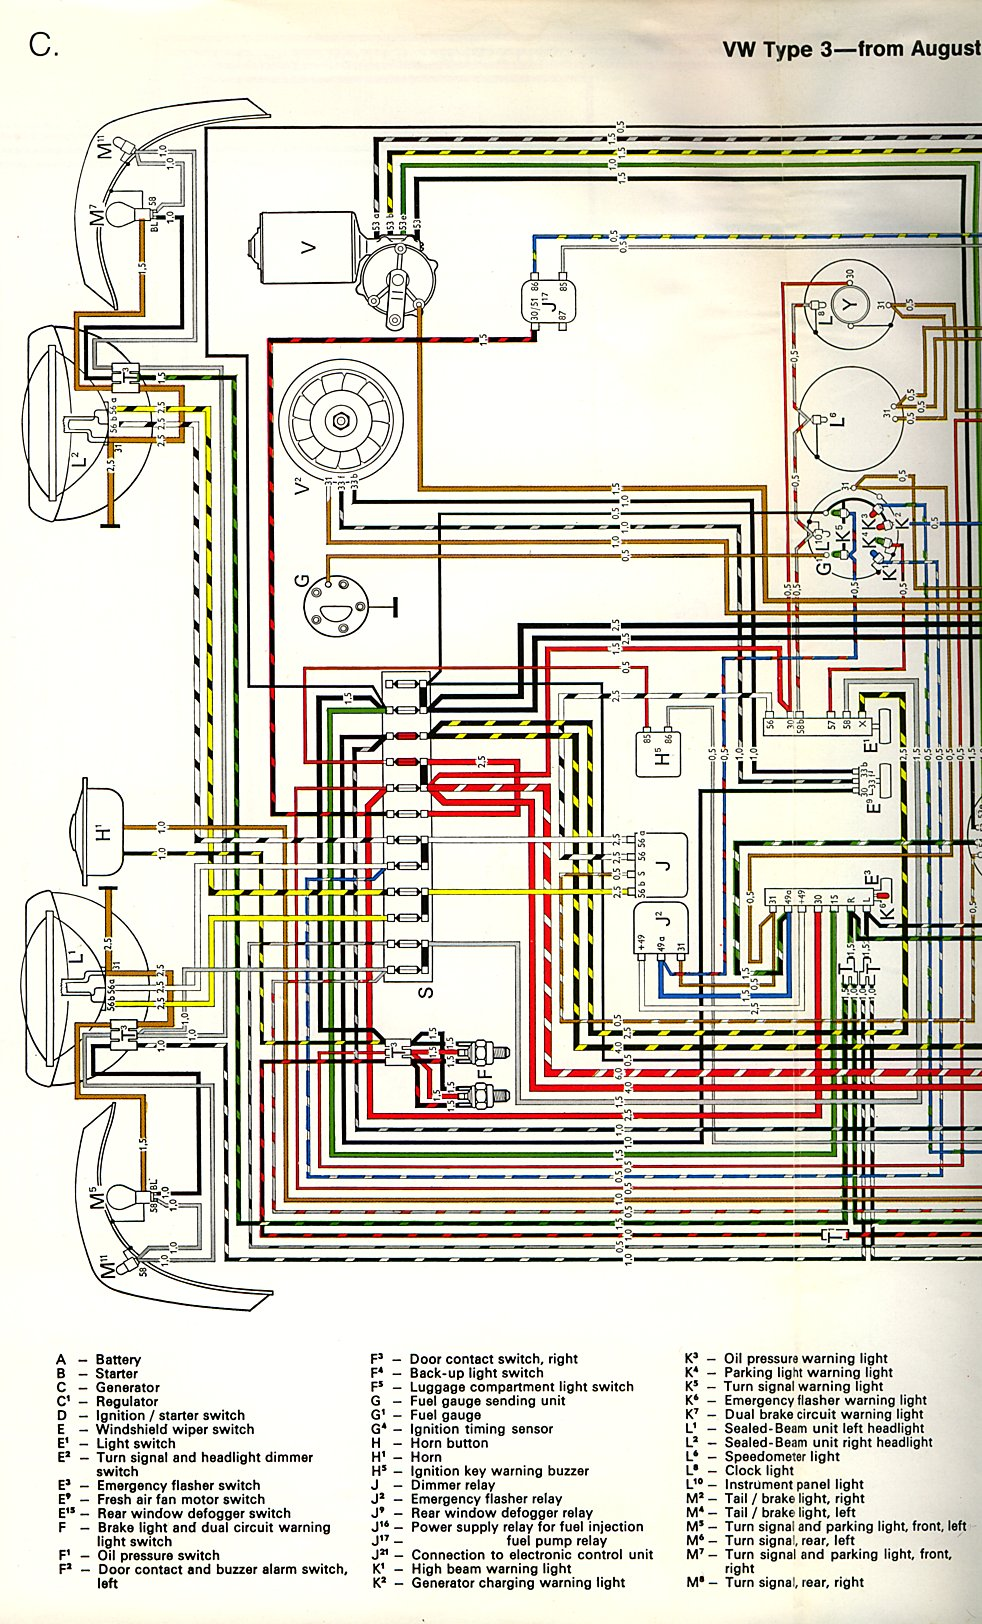 72 Vw Beetle Wiring Diagram Schematic Not Lossing 1600 Captain Source Of U2022 Rh Rosepettal Com Gauge Cluster